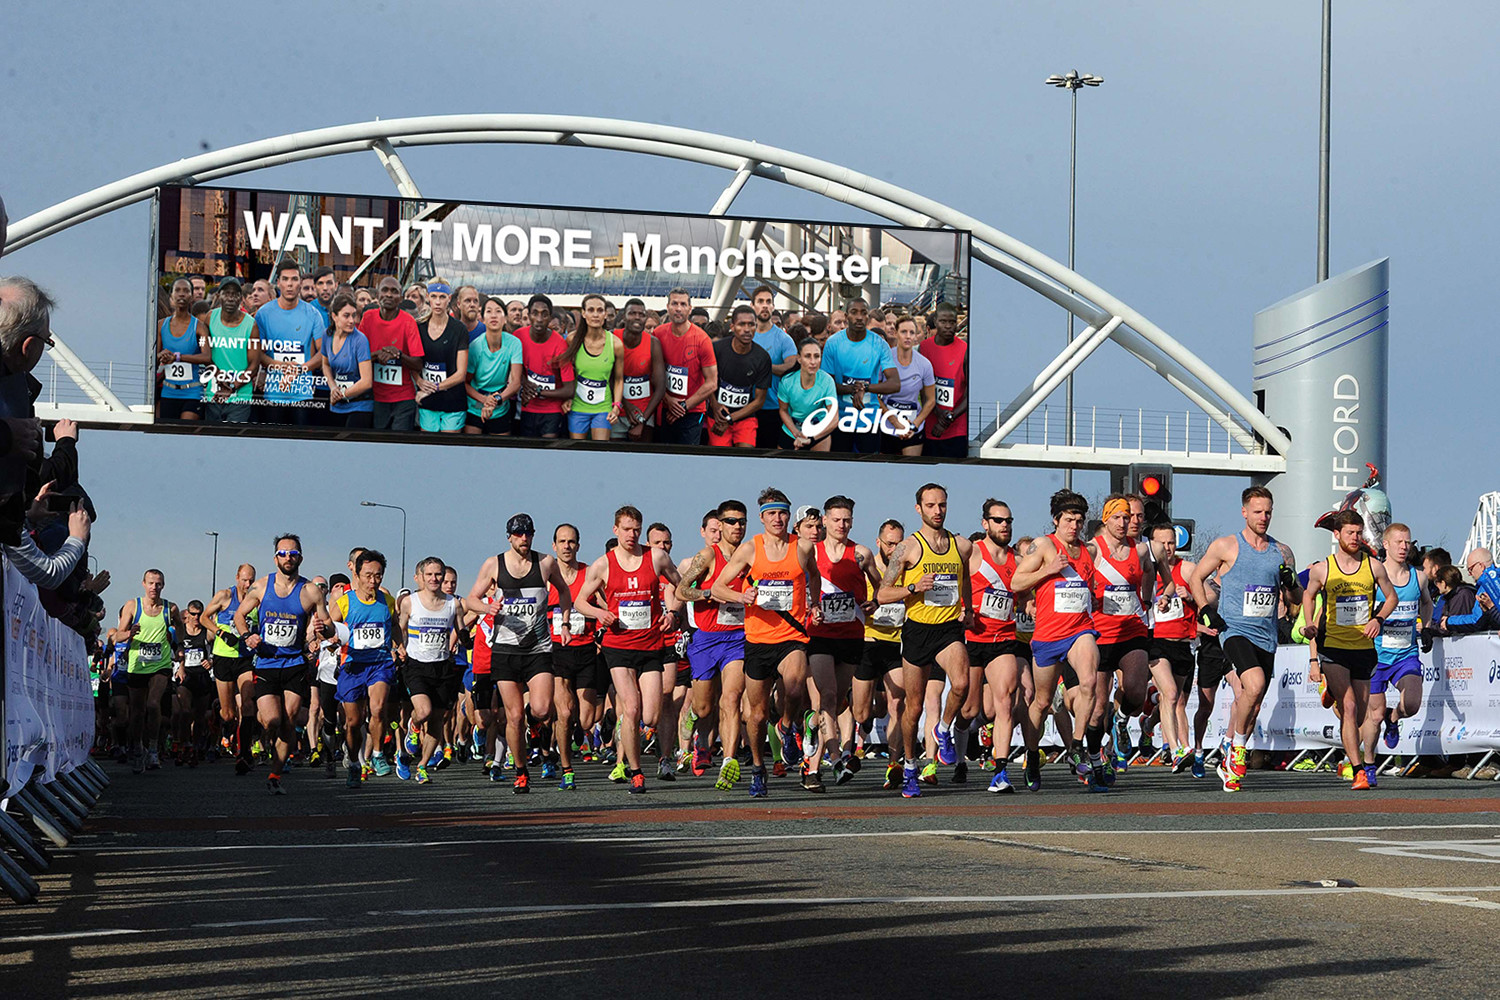 Final Call For Greater Manchester Marathon